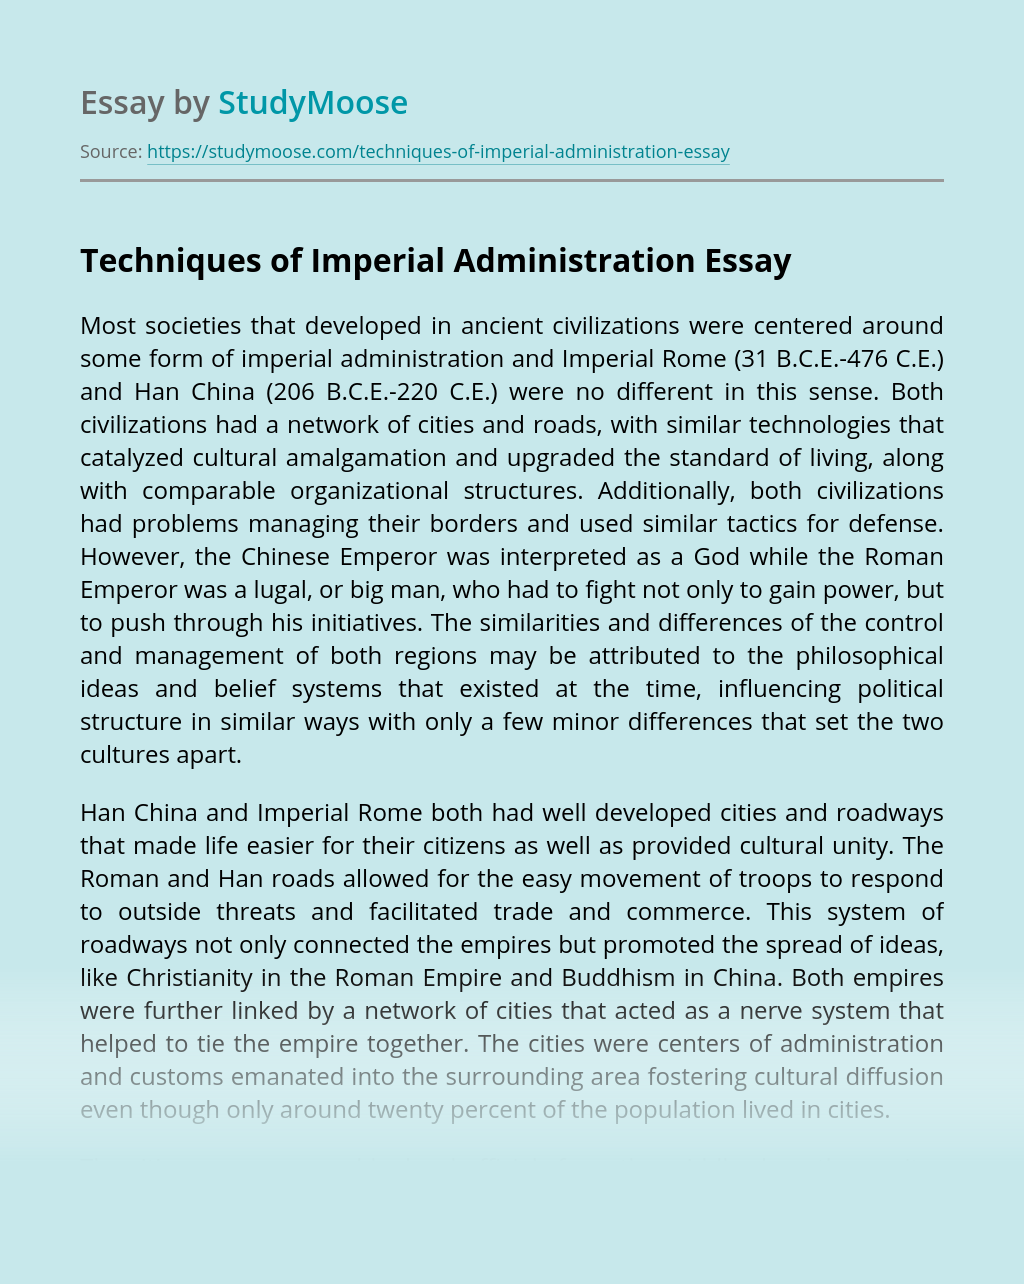 Techniques of Imperial Administration